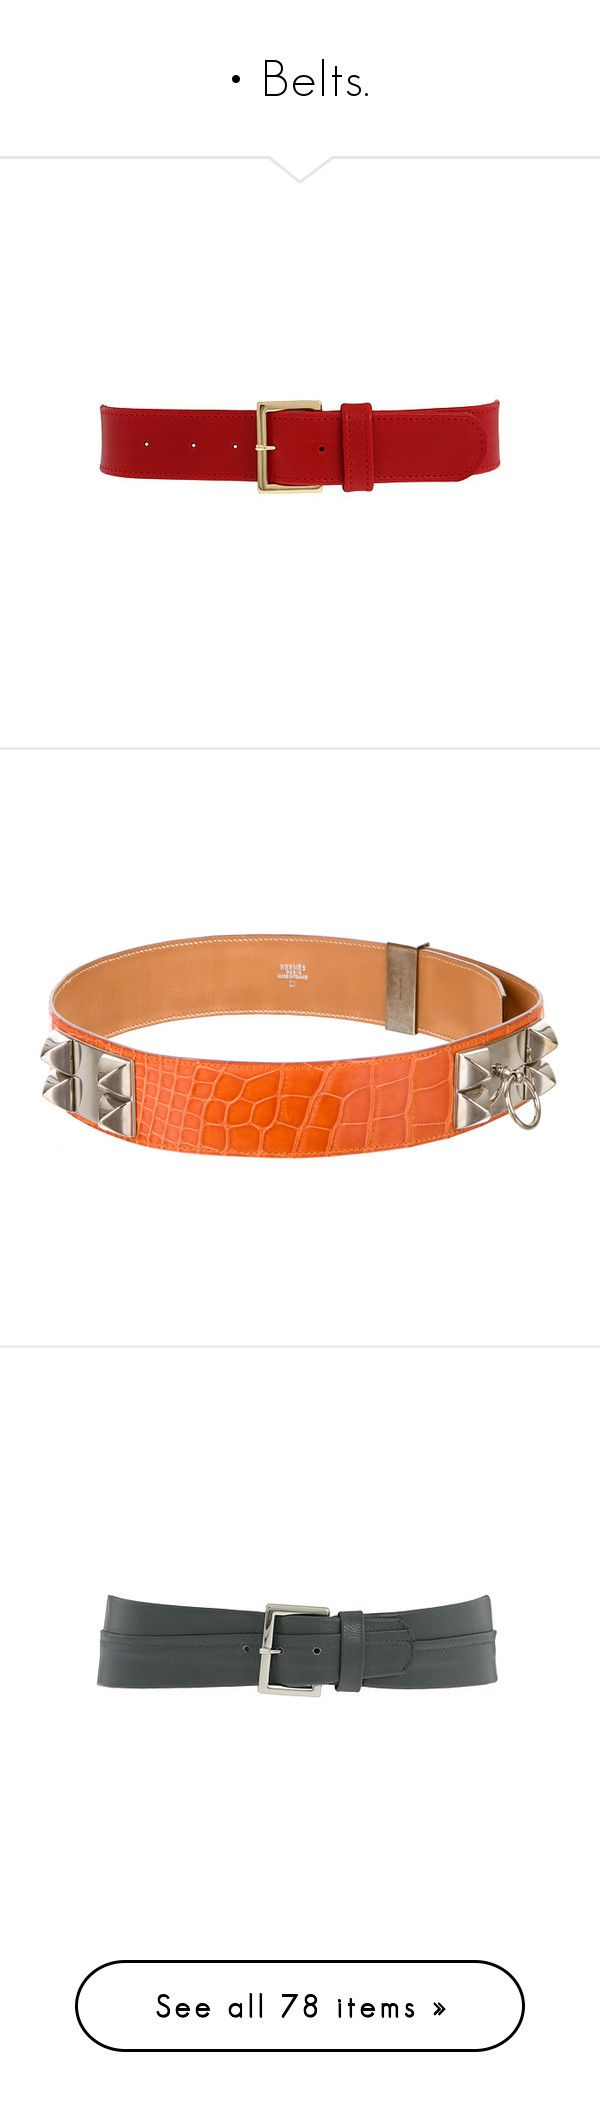 """• Belts."" by krys30rose ❤ liked on Polyvore featuring belts, accessories, cintos, red, cinturones, women's belts, orange, hermès, hermes belt and alligator belt"